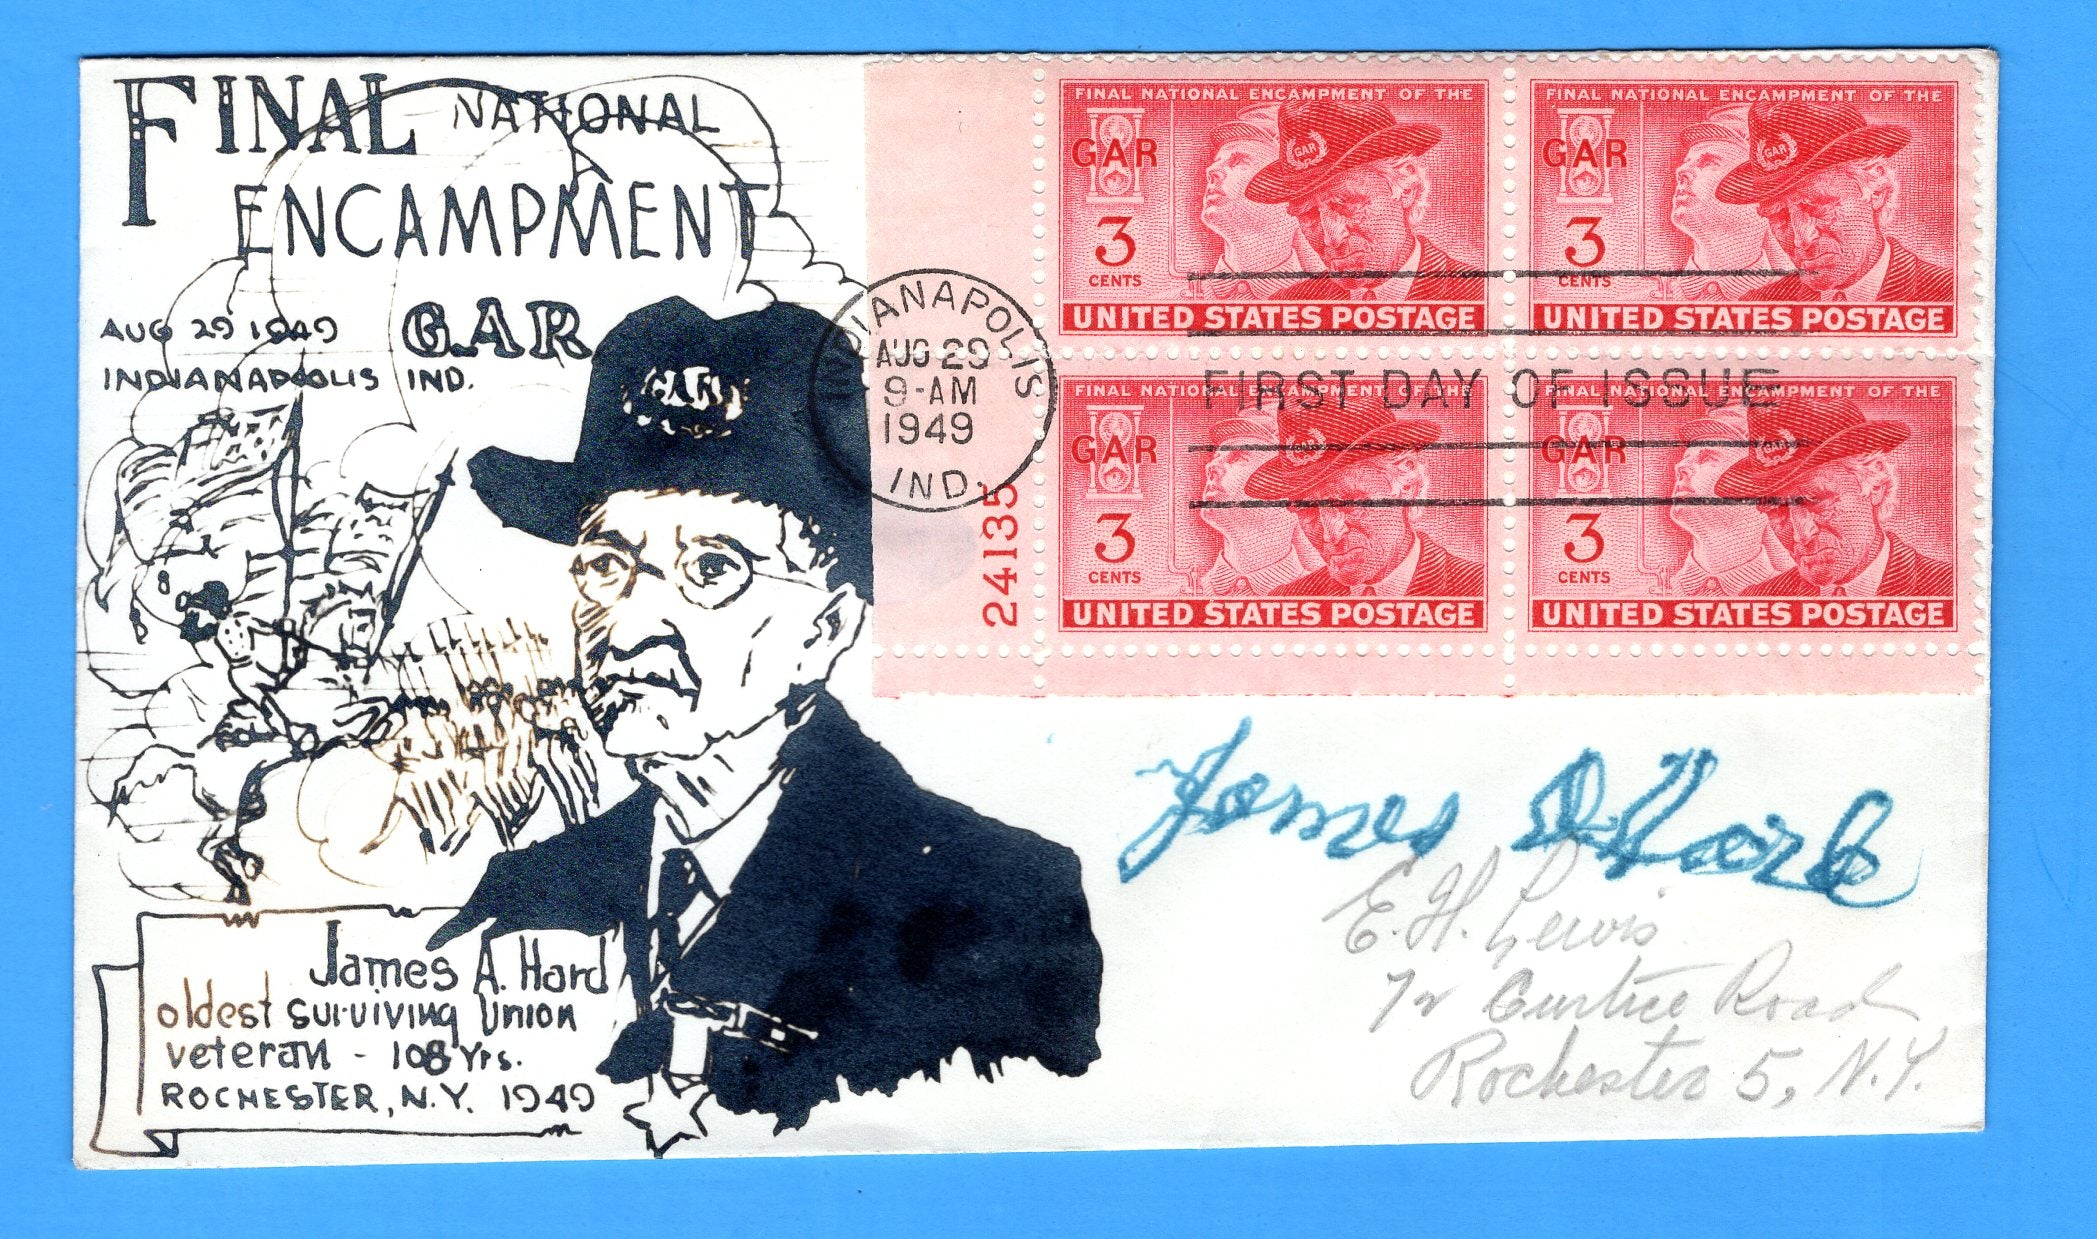 Scott 985 3c Final Encampment GAR Photo Cachet First Day Cover - Plate Block - by Eric Lewis - Very Rare - Only Two Known Copies - Signed by James A. Hard Oldest Surviving Union Veteran